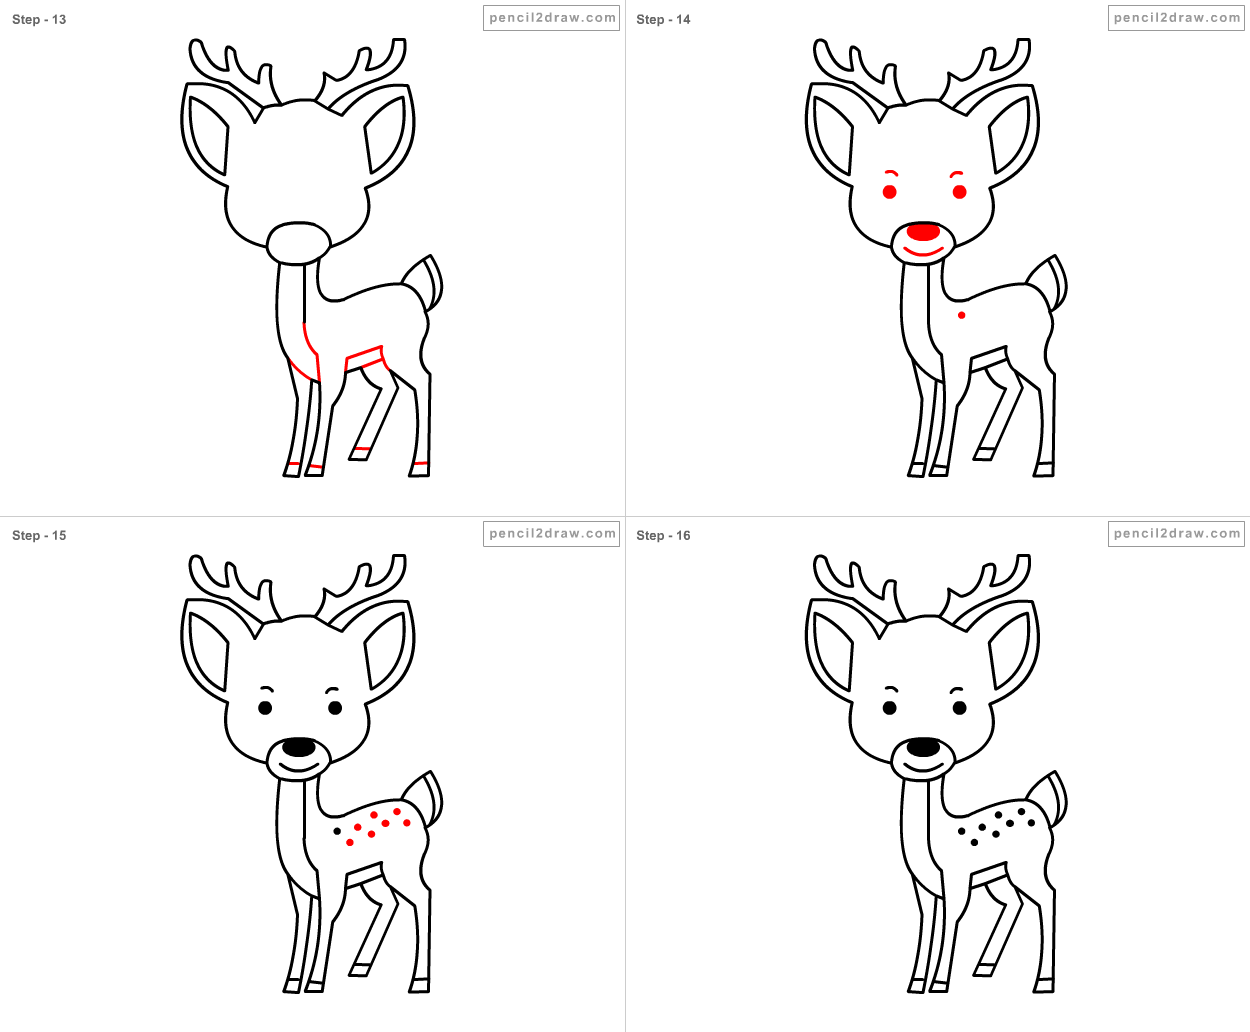 Slide 4 - Draw deer ki...